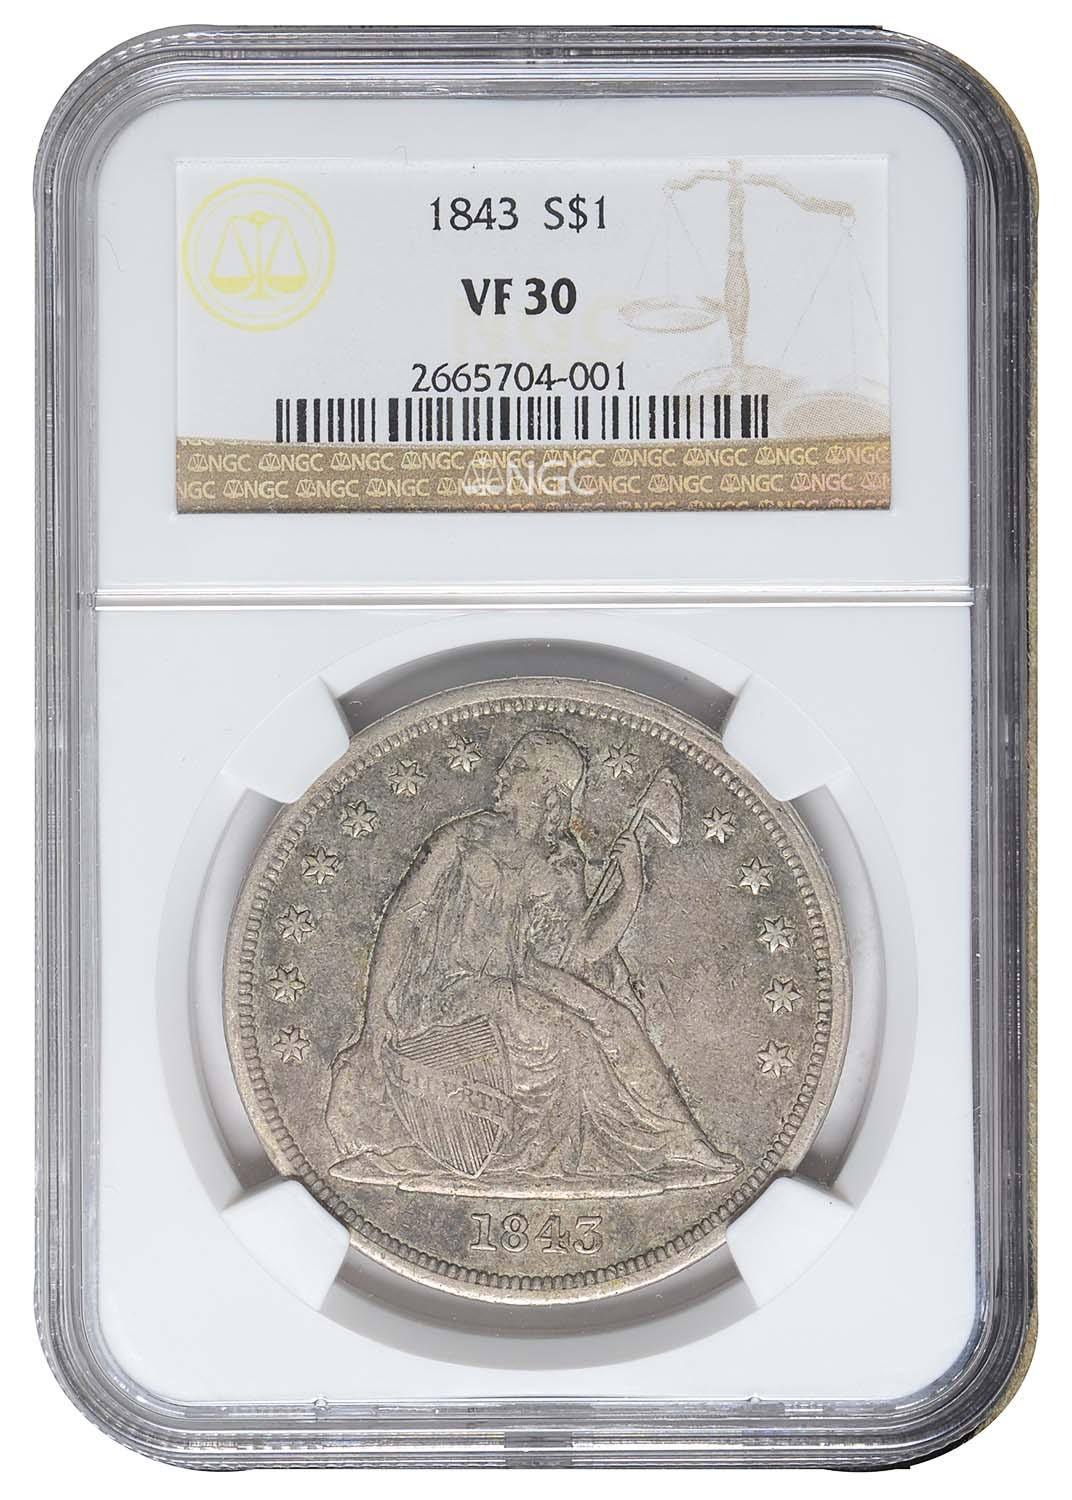 EARLY 1843 SEATED LIBERTY ONE 1 SILVER DOLLAR NGC VF 30 - ONLY 165,100 MINTED!